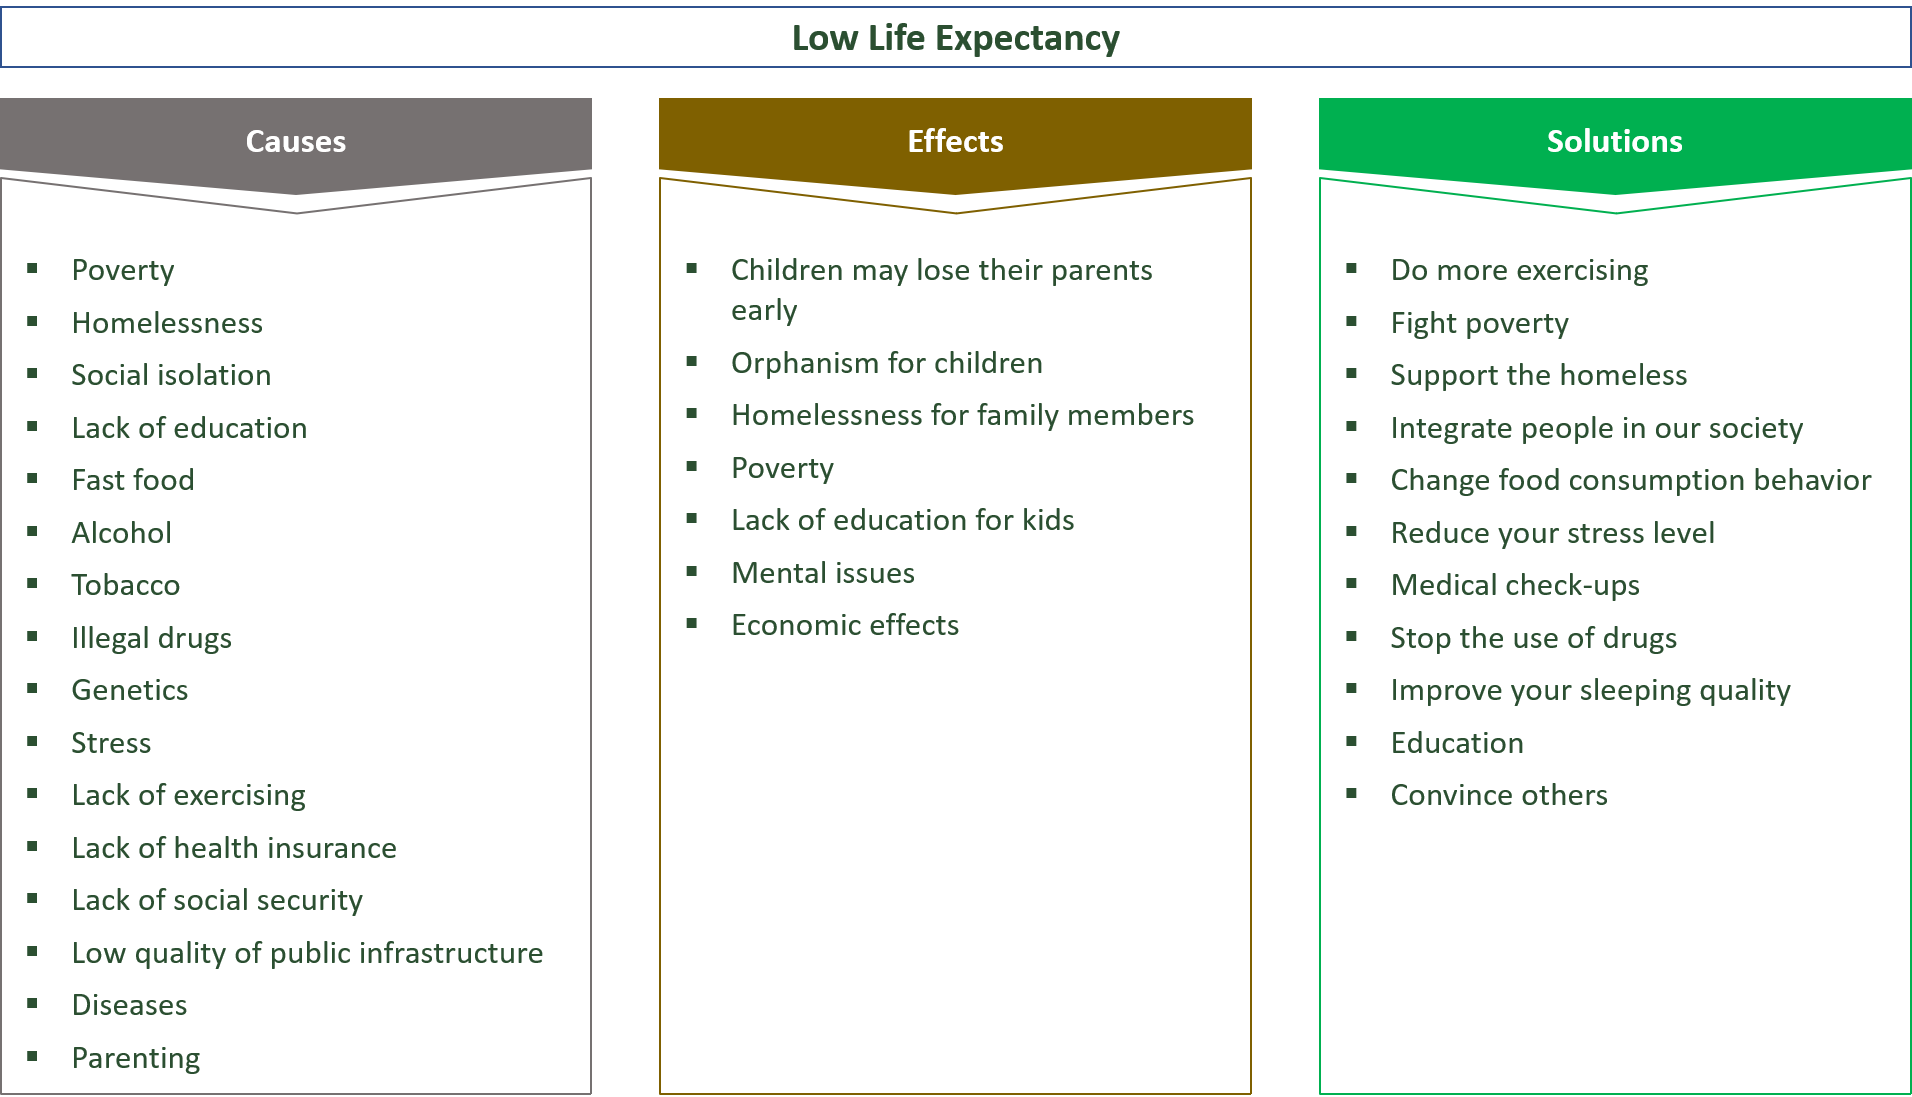 causes, effects and solutions for a low life expectancy